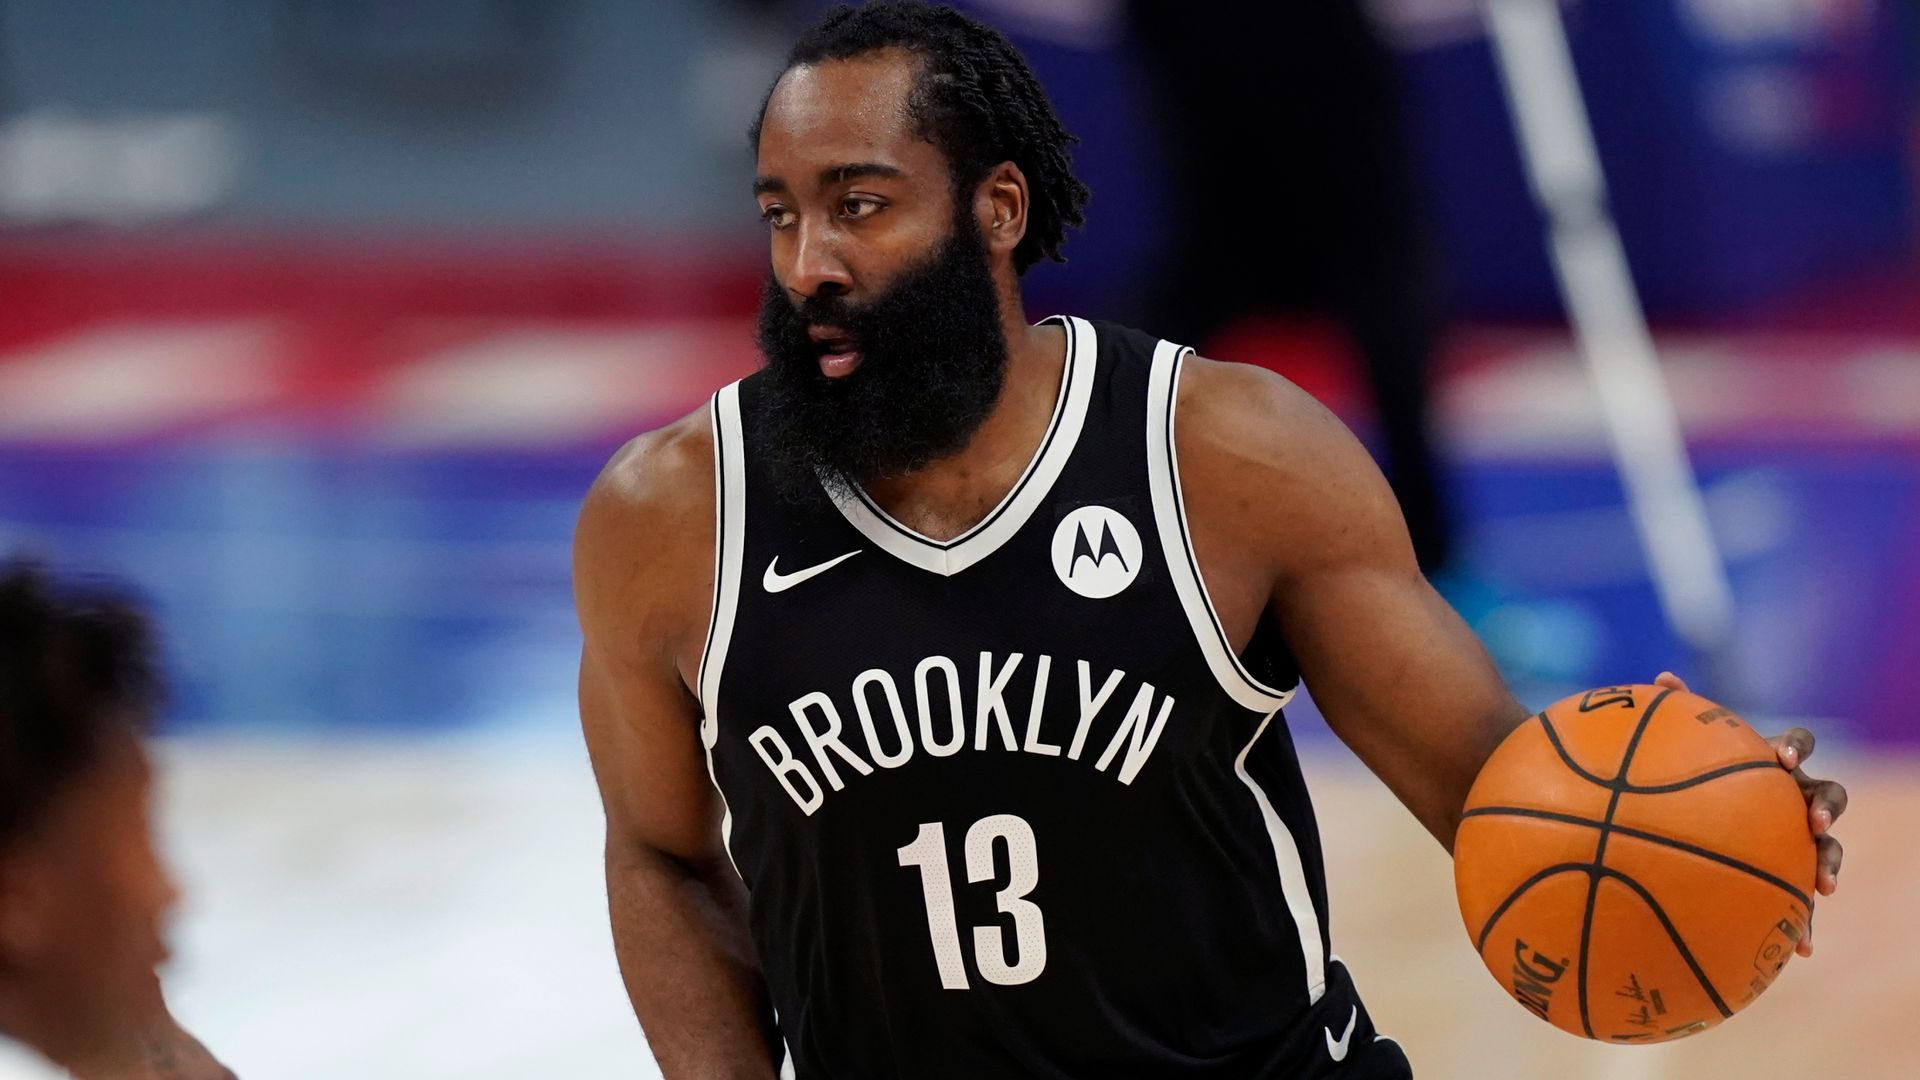 Harden hits 44 points as Nets hold off Pistons